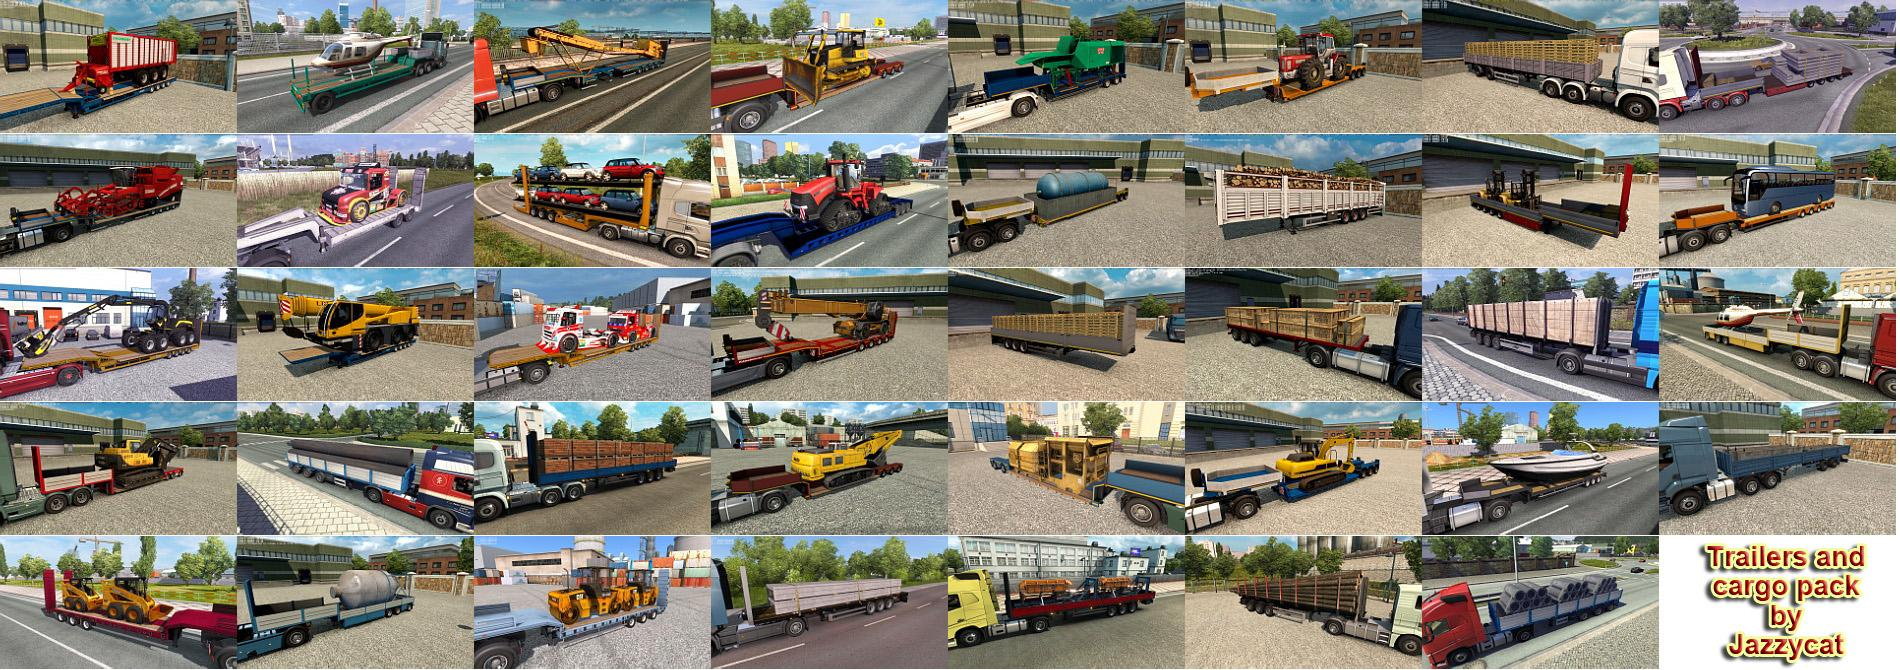 TRAILERS AND CARGO PACK BY JAZZYCAT V6 8 ETS2 - ETS2 Mod